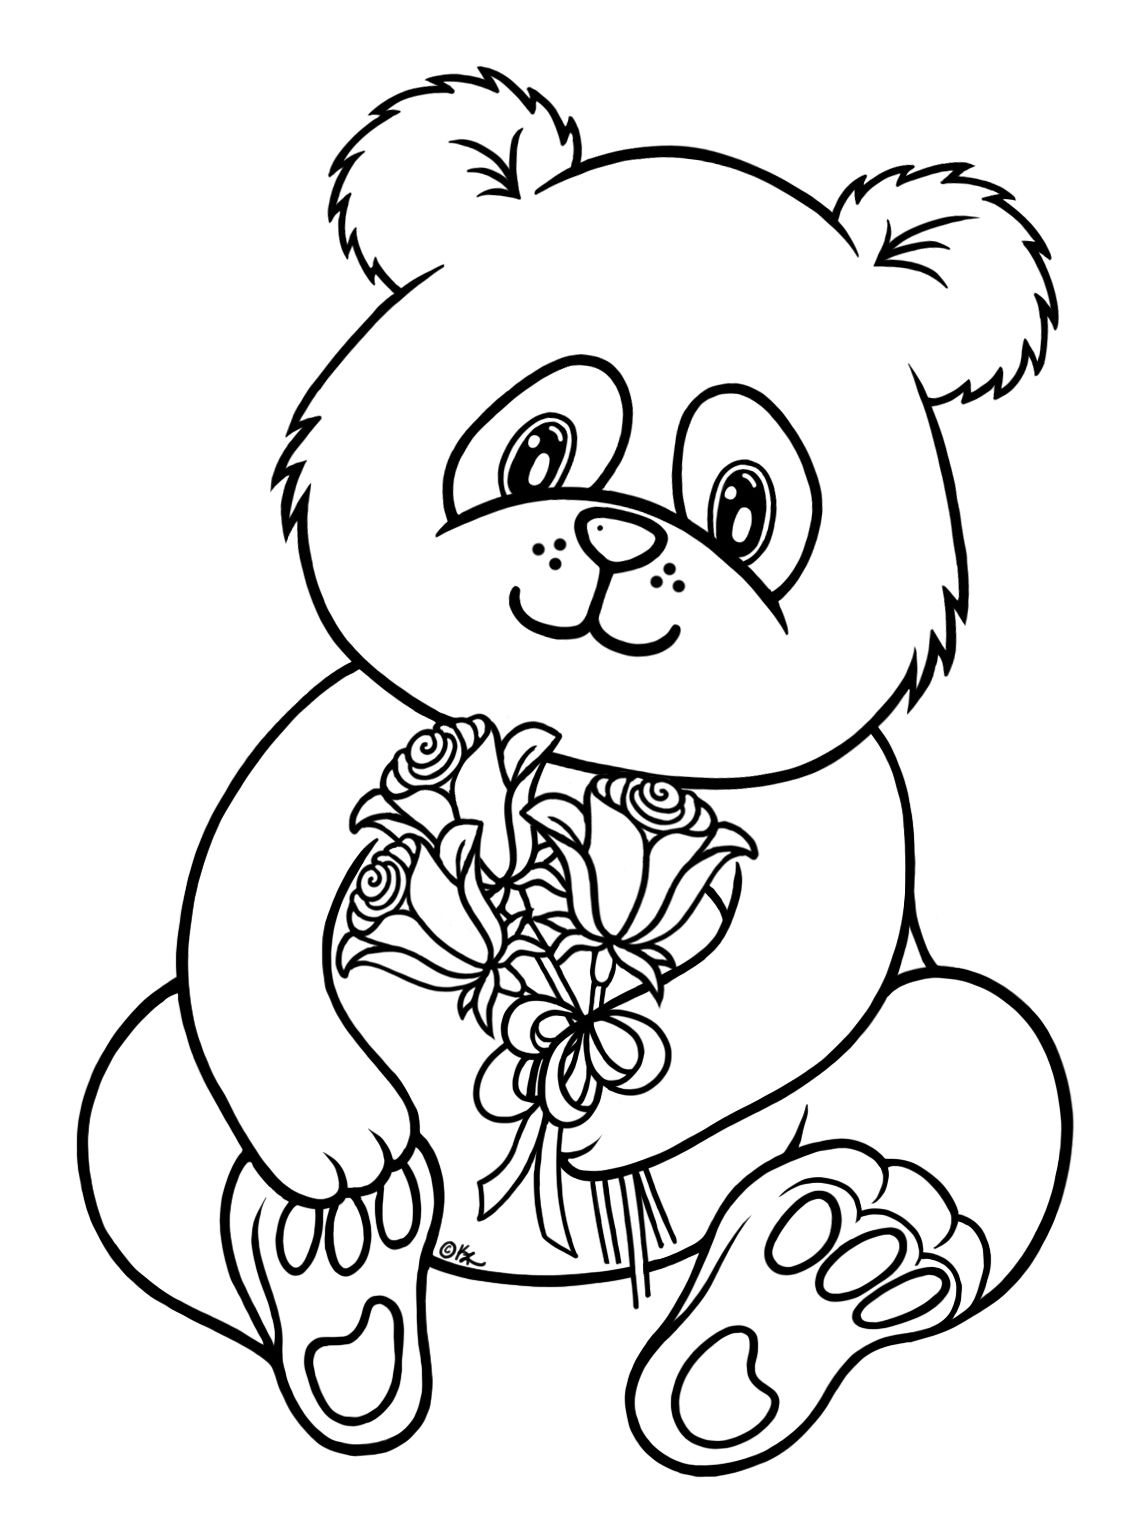 Panda Bear Freebie 21 Unicorn Coloring Pages Bear Coloring